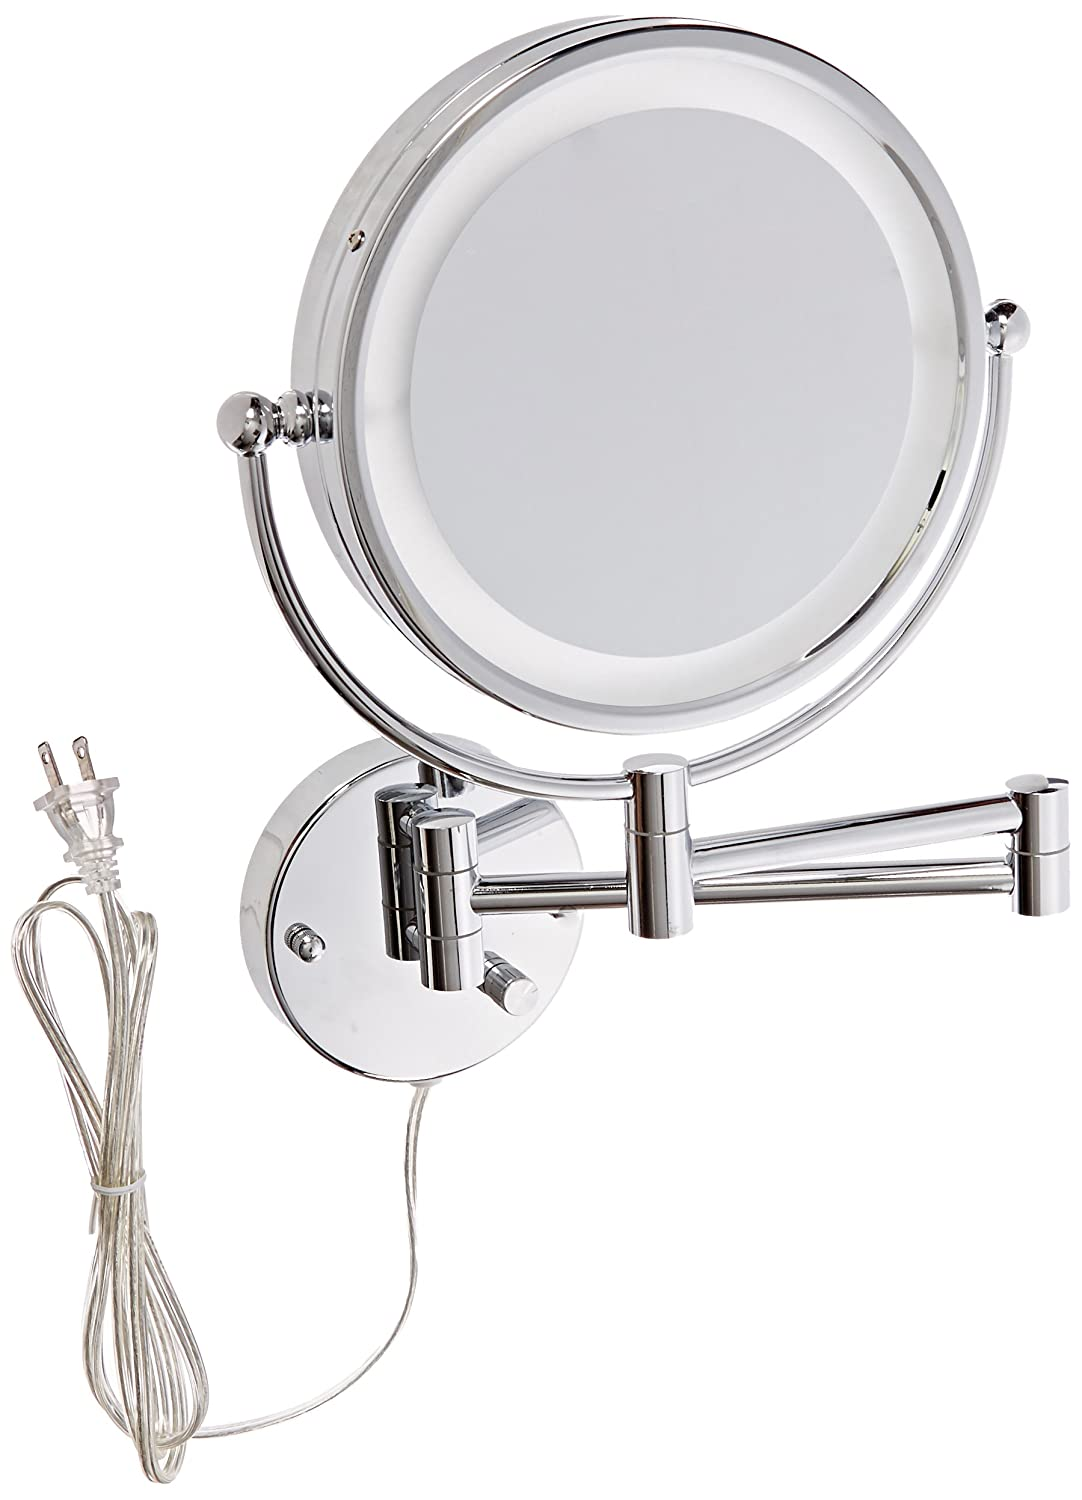 American Imaginations AI-13-557 Round LED Mirror with Light Dimmer and Dual 1x/5x Zoom, 8.5-Inch